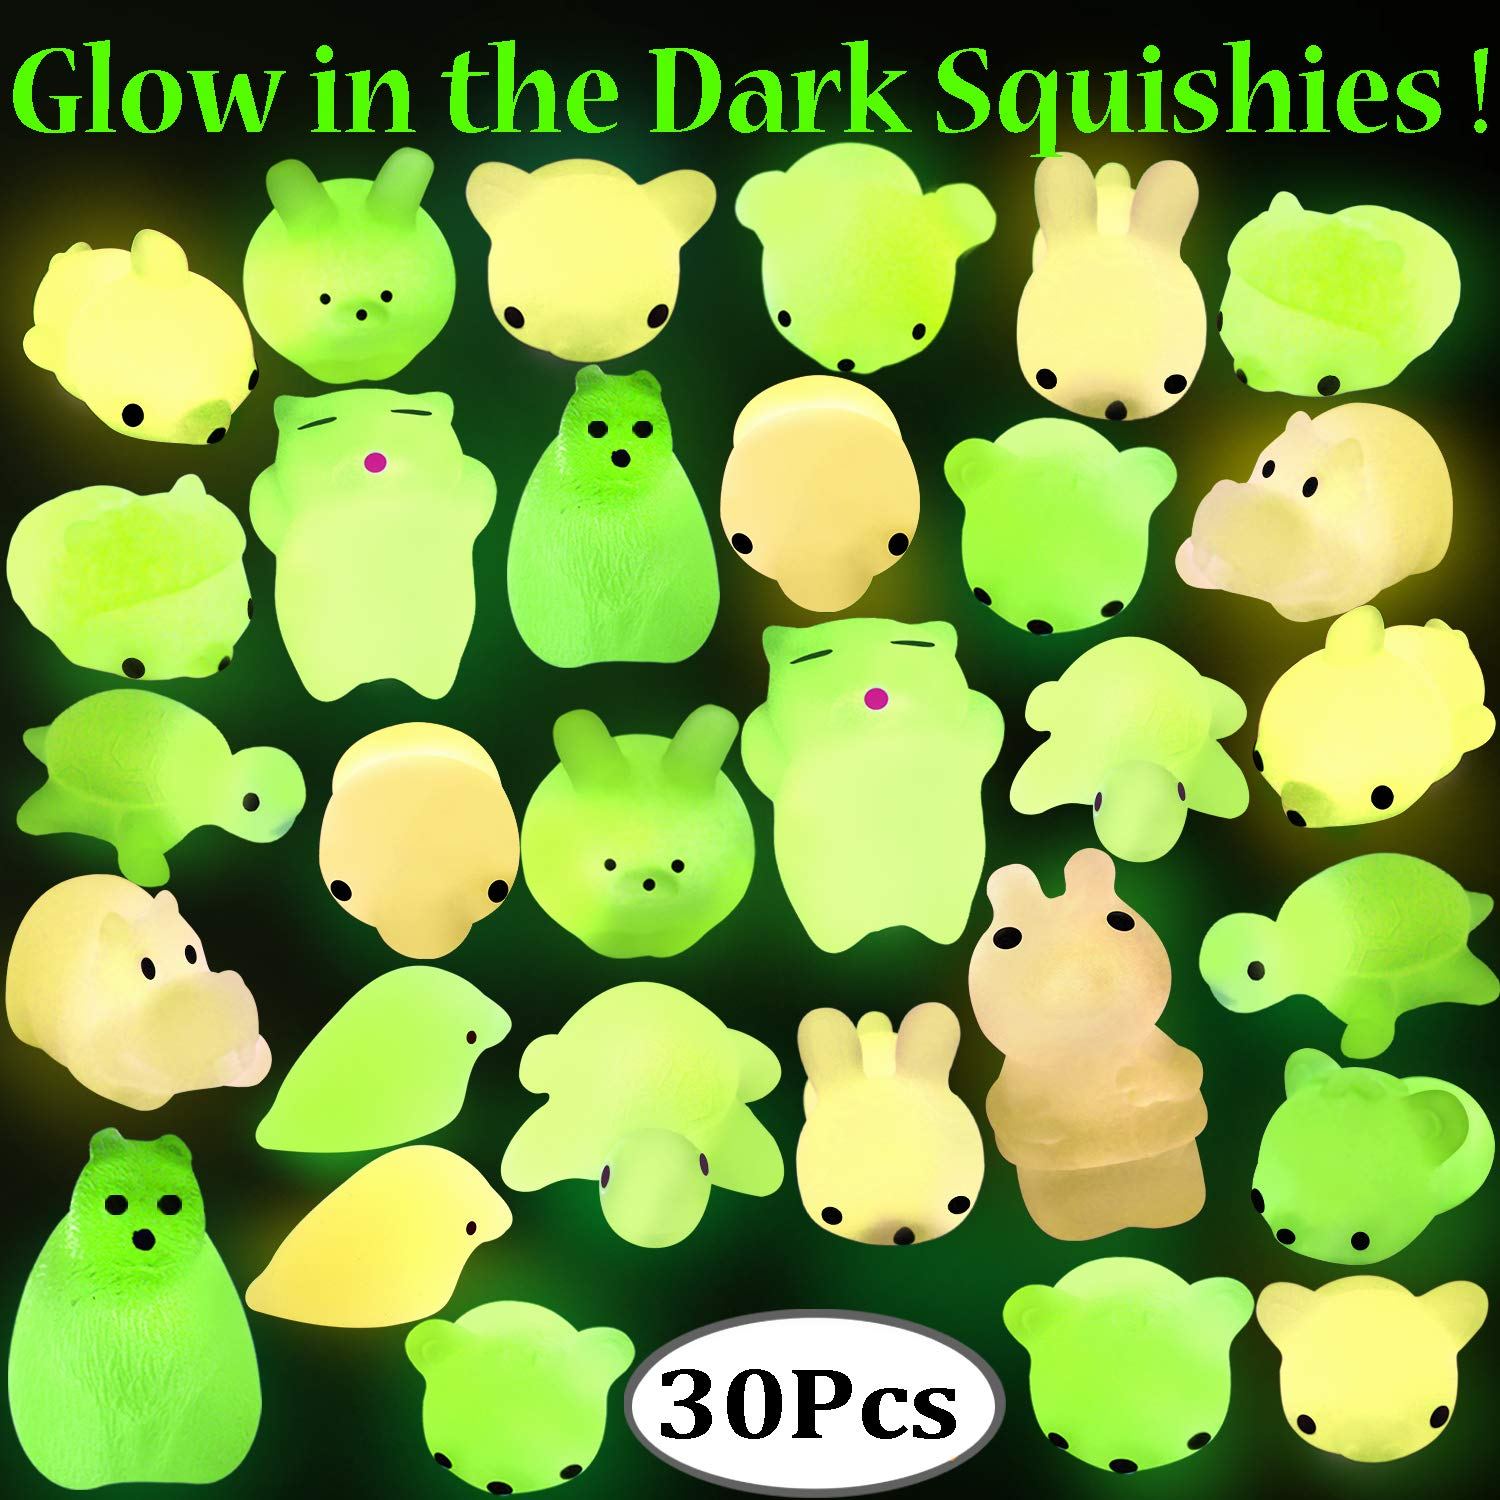 Outee Squishy Mochi Animals, 30 Pcs Glow in The Dark Squishy Mochi Animal Stress Toys Squeeze Mochi Squishy Toys Soft Squishy Stress Relief Toys Squishy Squeeze